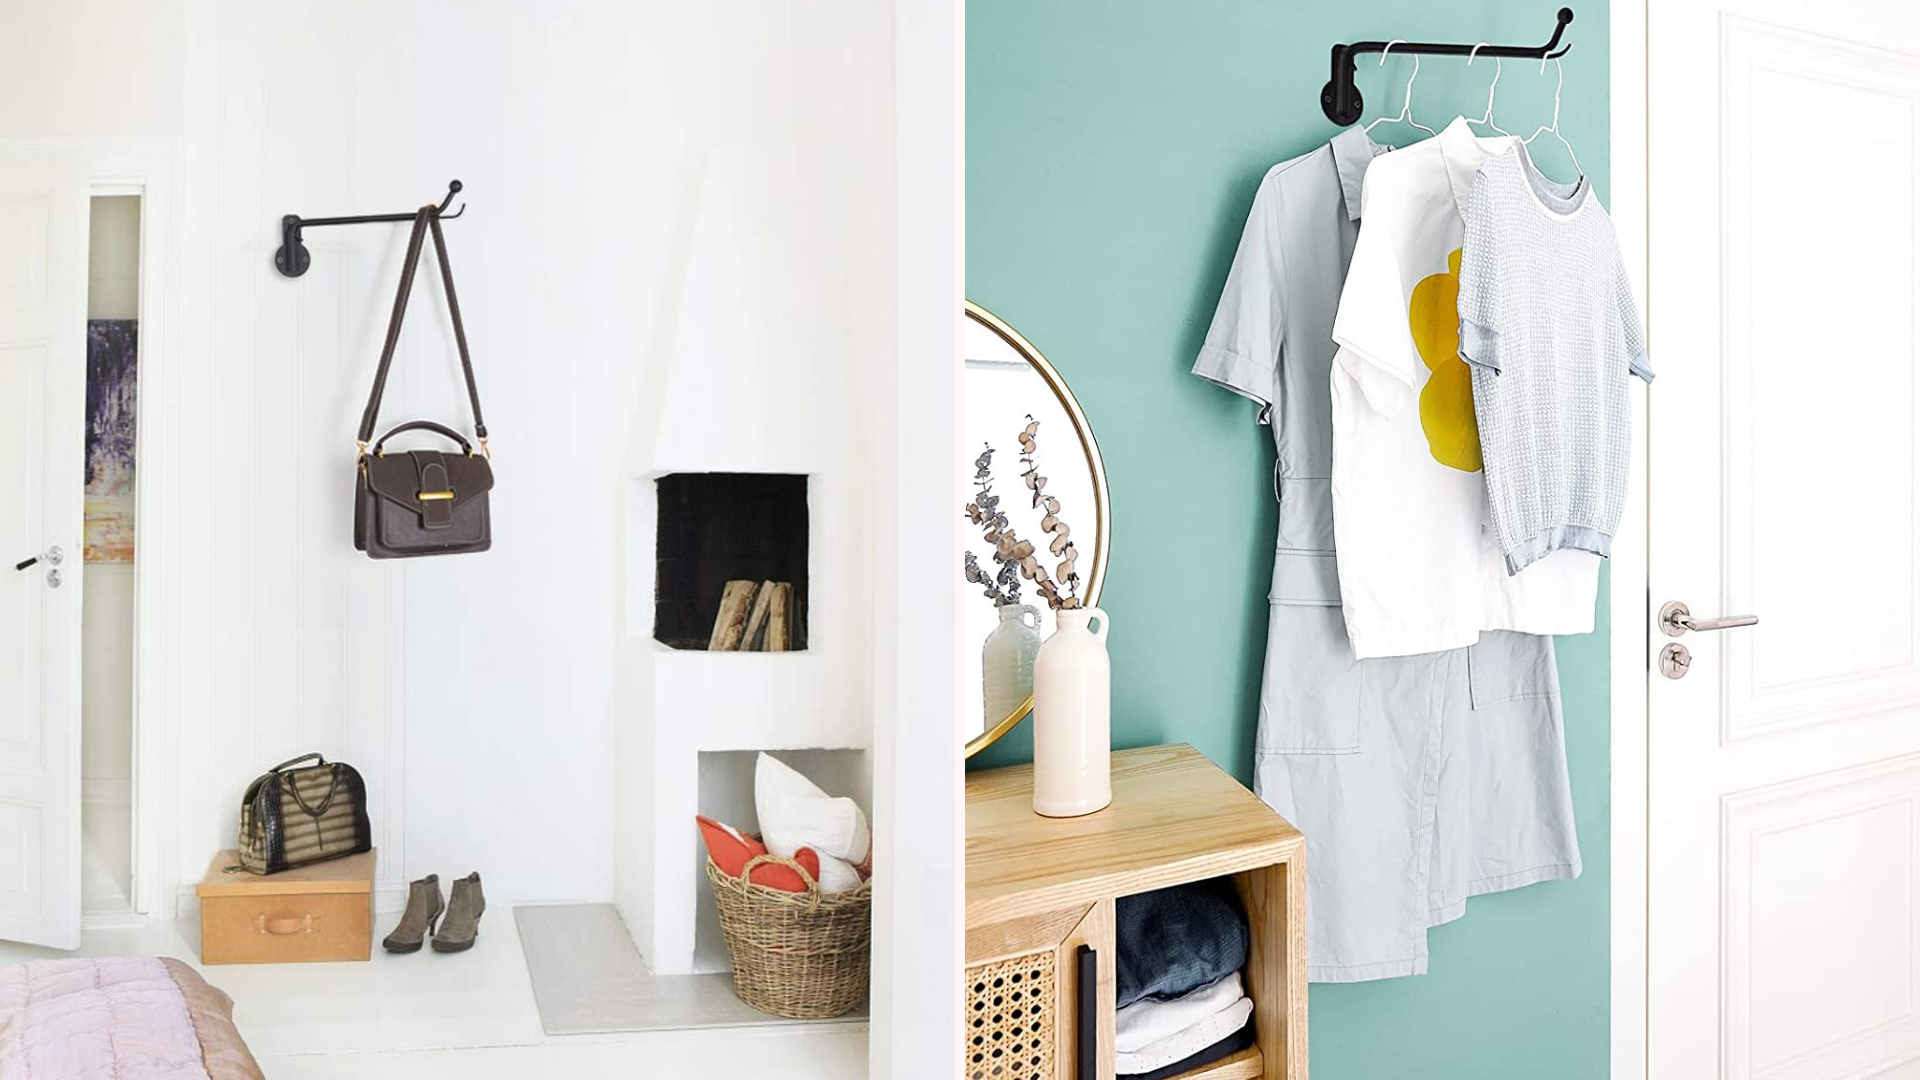 two images of a black clothes hanger on the wall, one holding a handbag and the other holding shirts on hangers